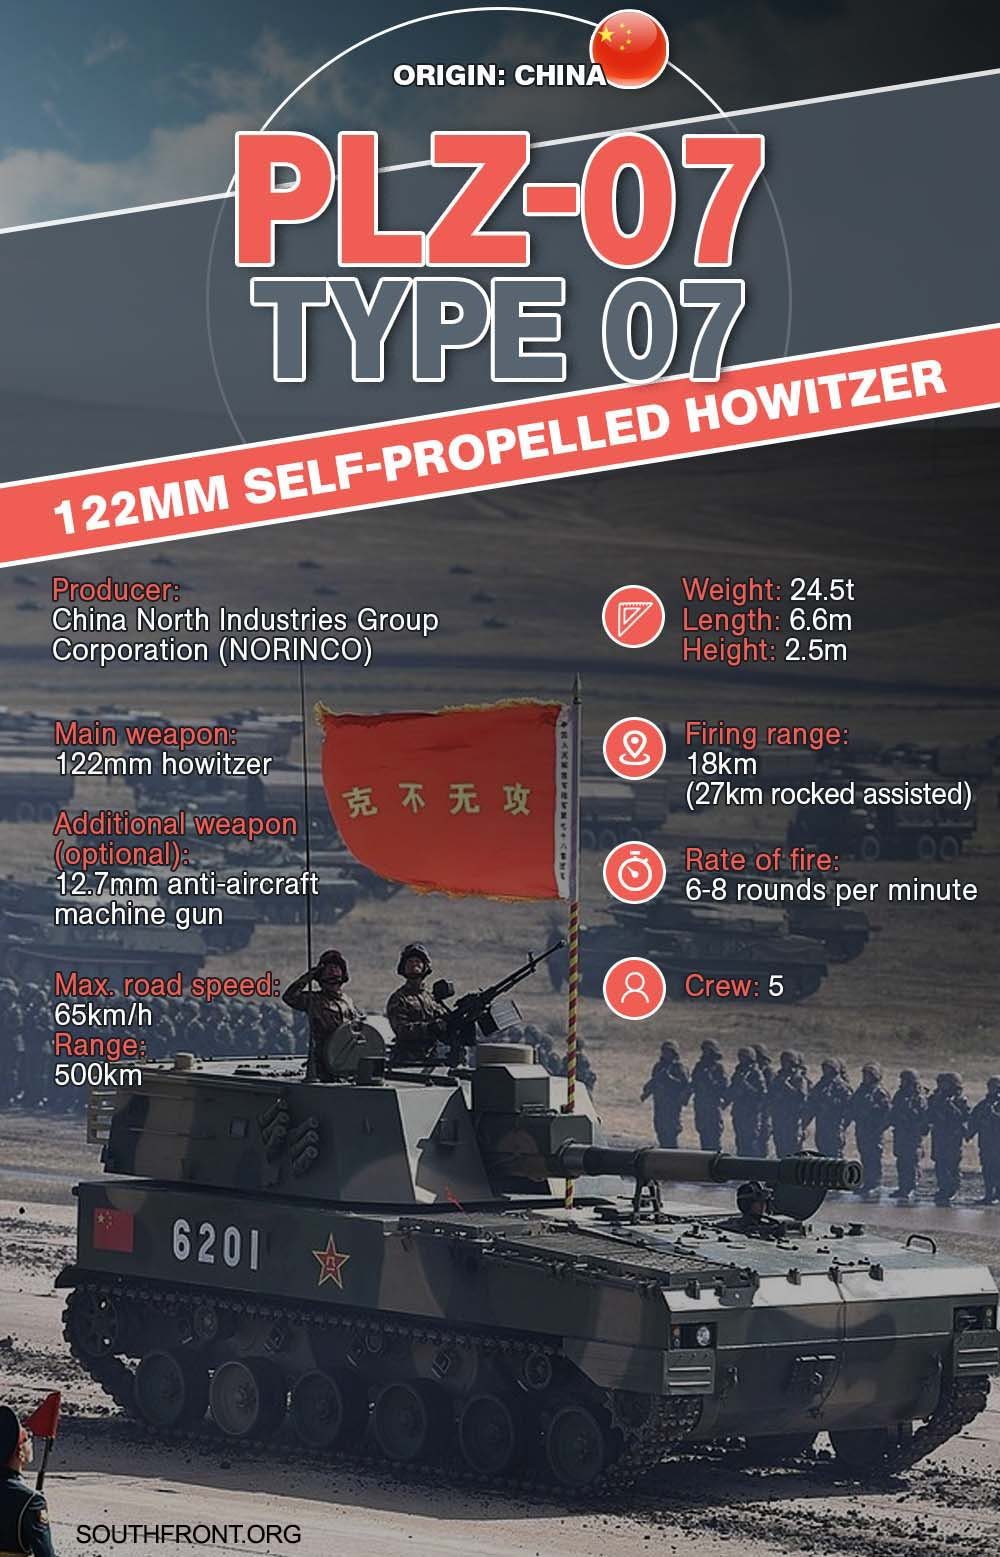 China's PLZ-07 Self-Propelled Howitzer